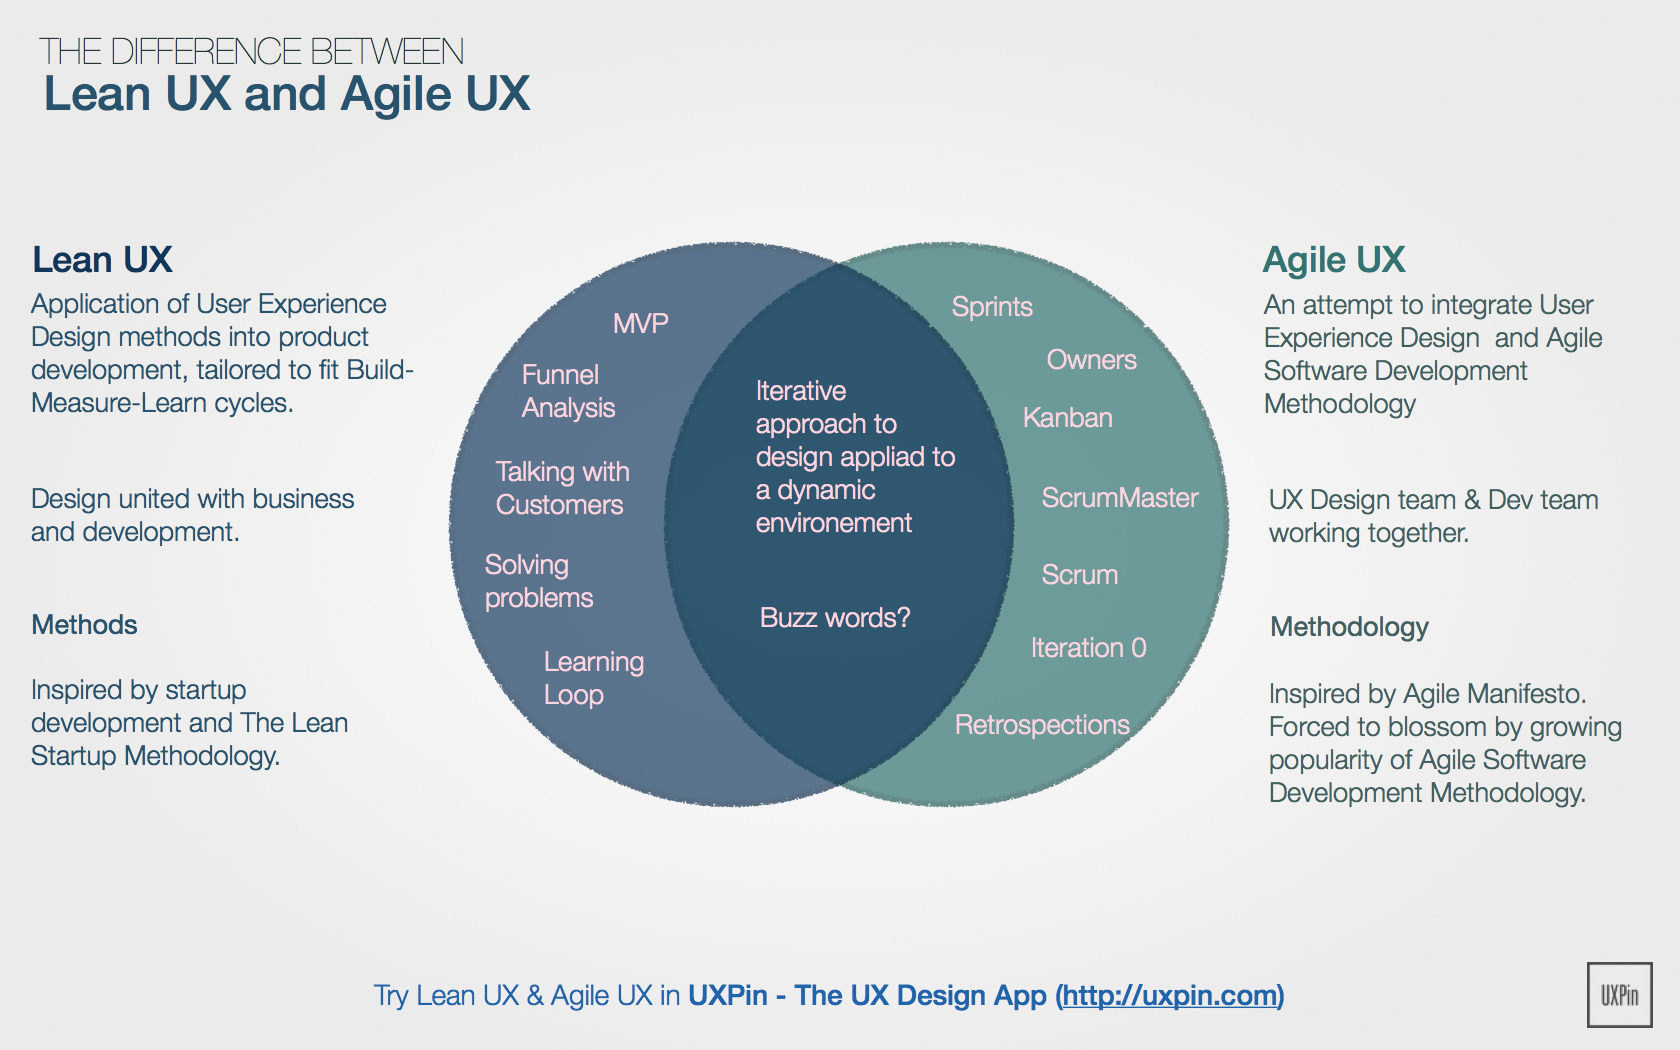 Lean Ux Vs Agile Ux Is There A Difference